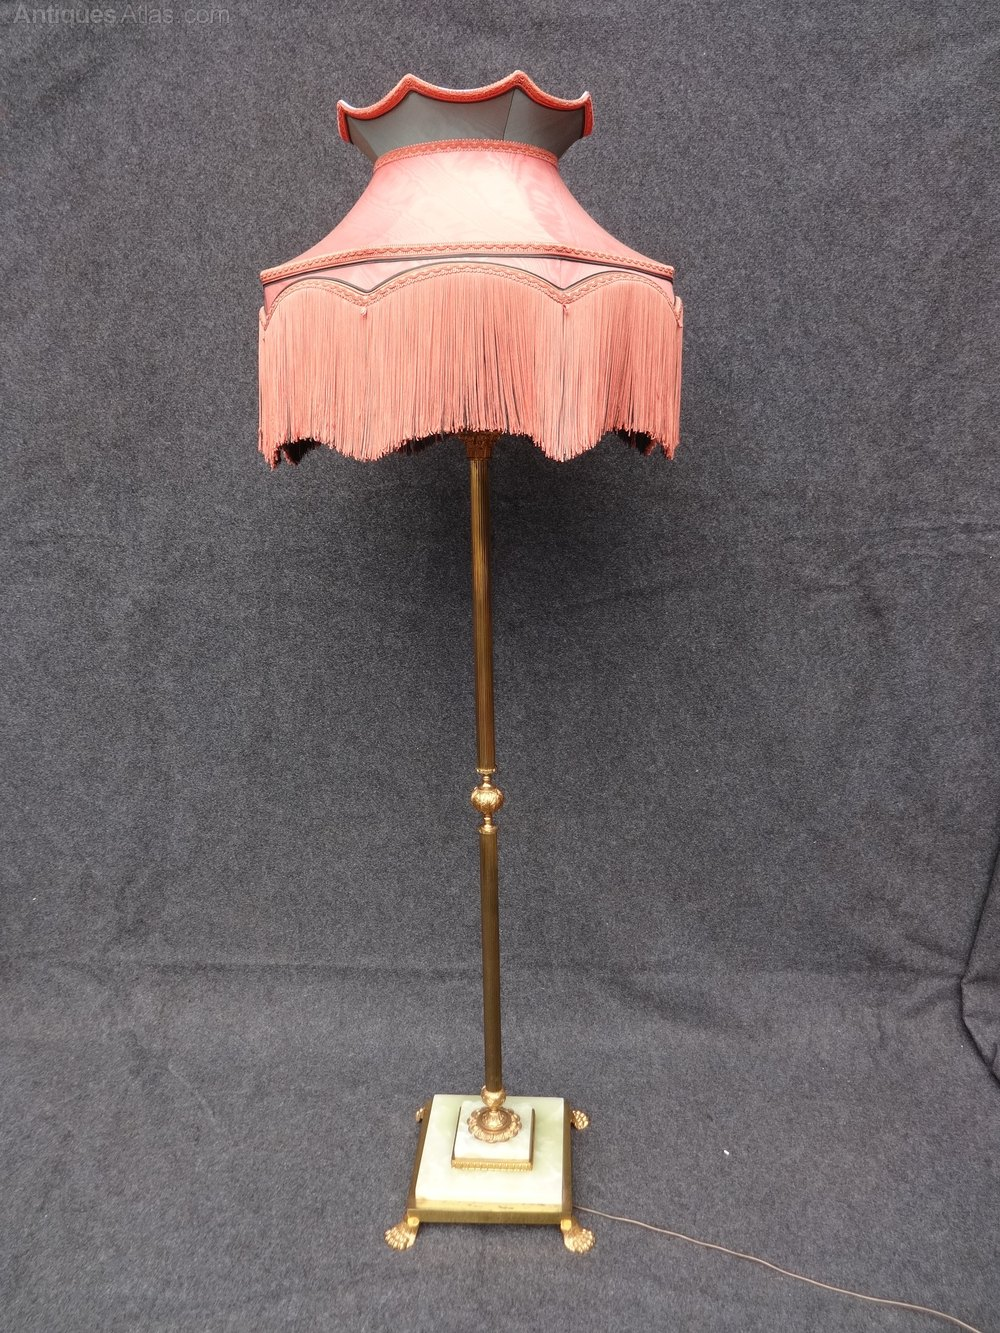 Antiques Atlas Brass And Onyx Standard Lamp With